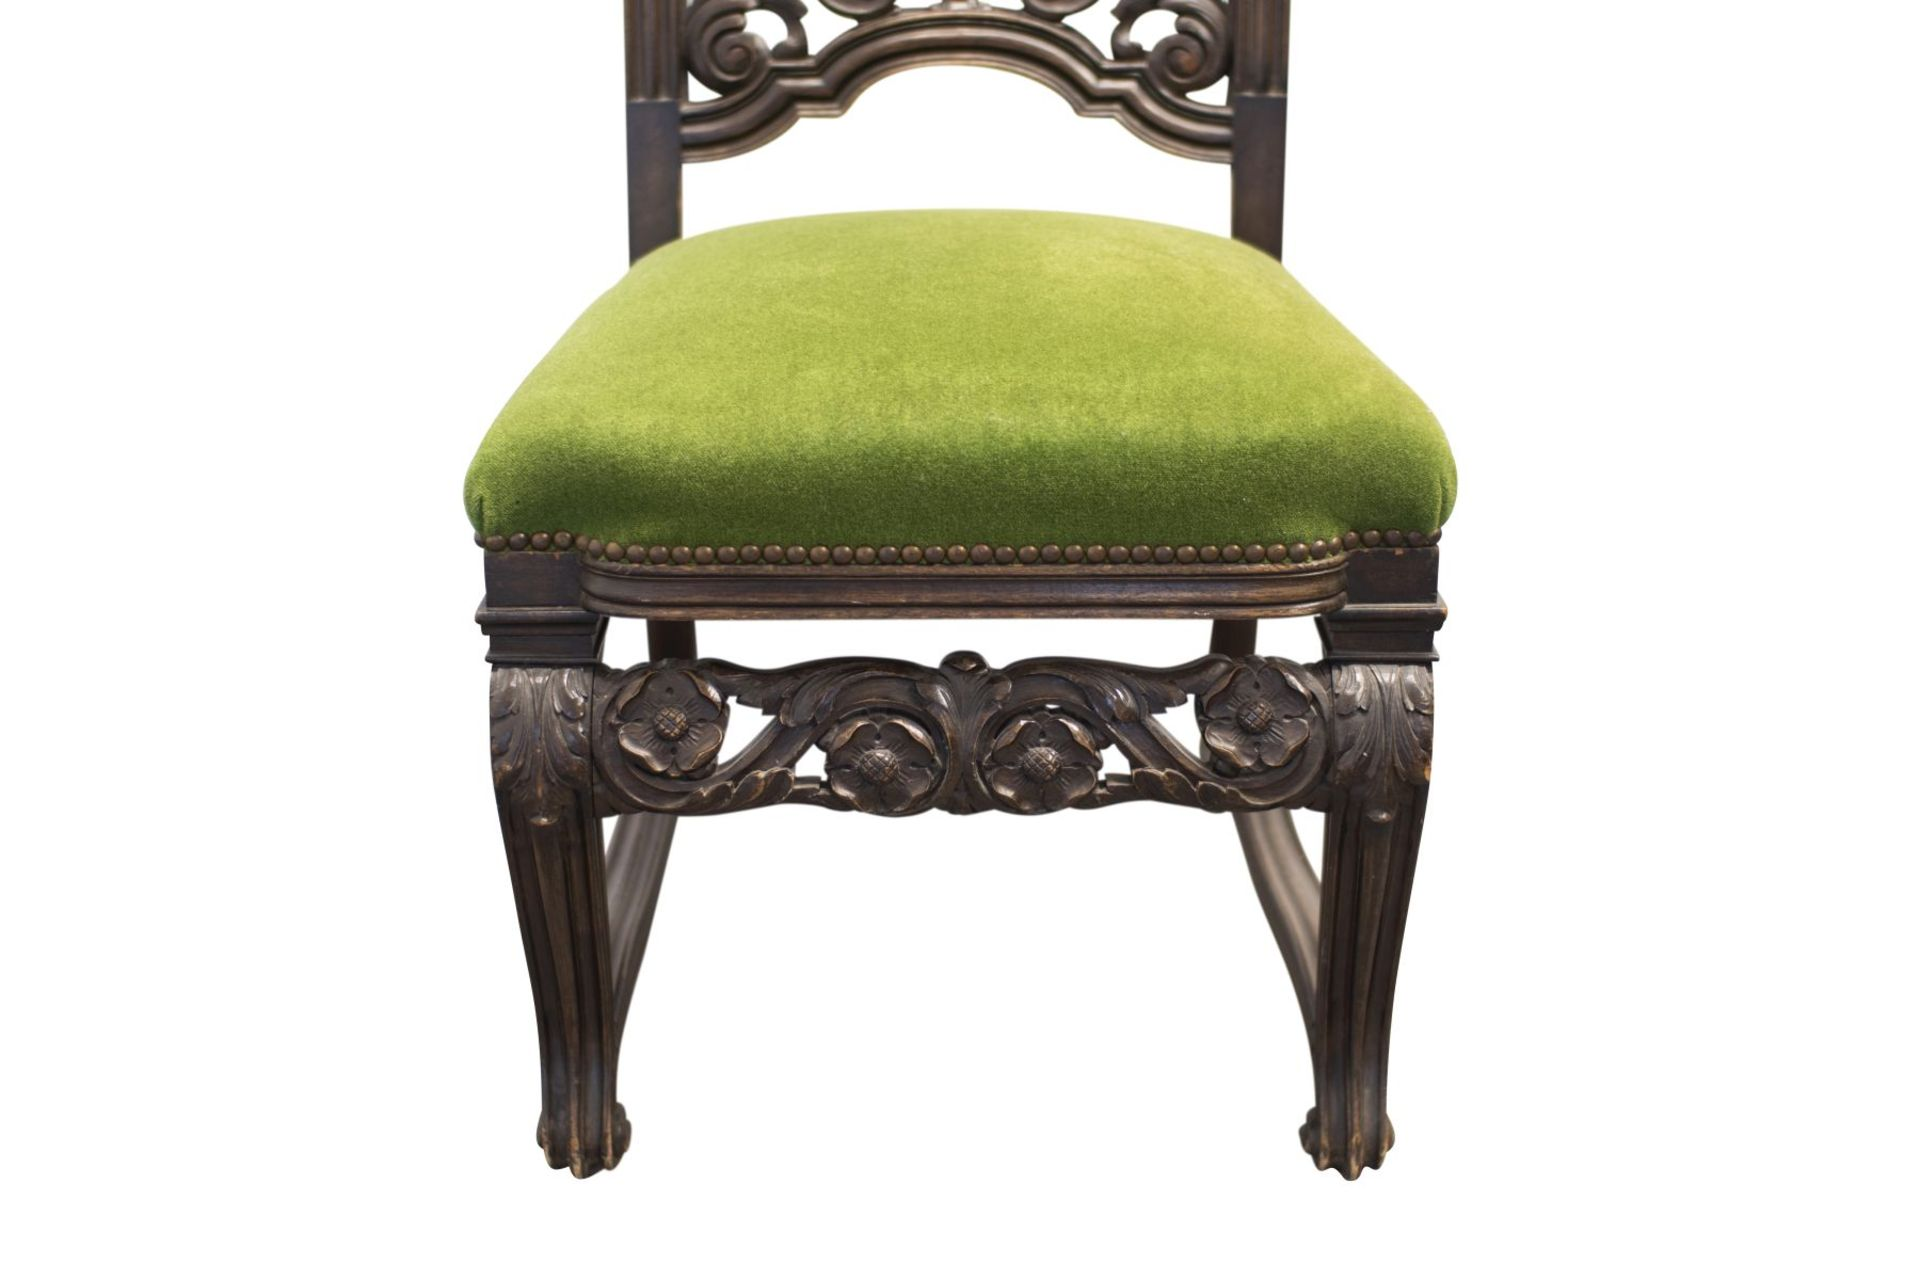 Pair of salon chairs, Belle Epoch style - Image 5 of 7